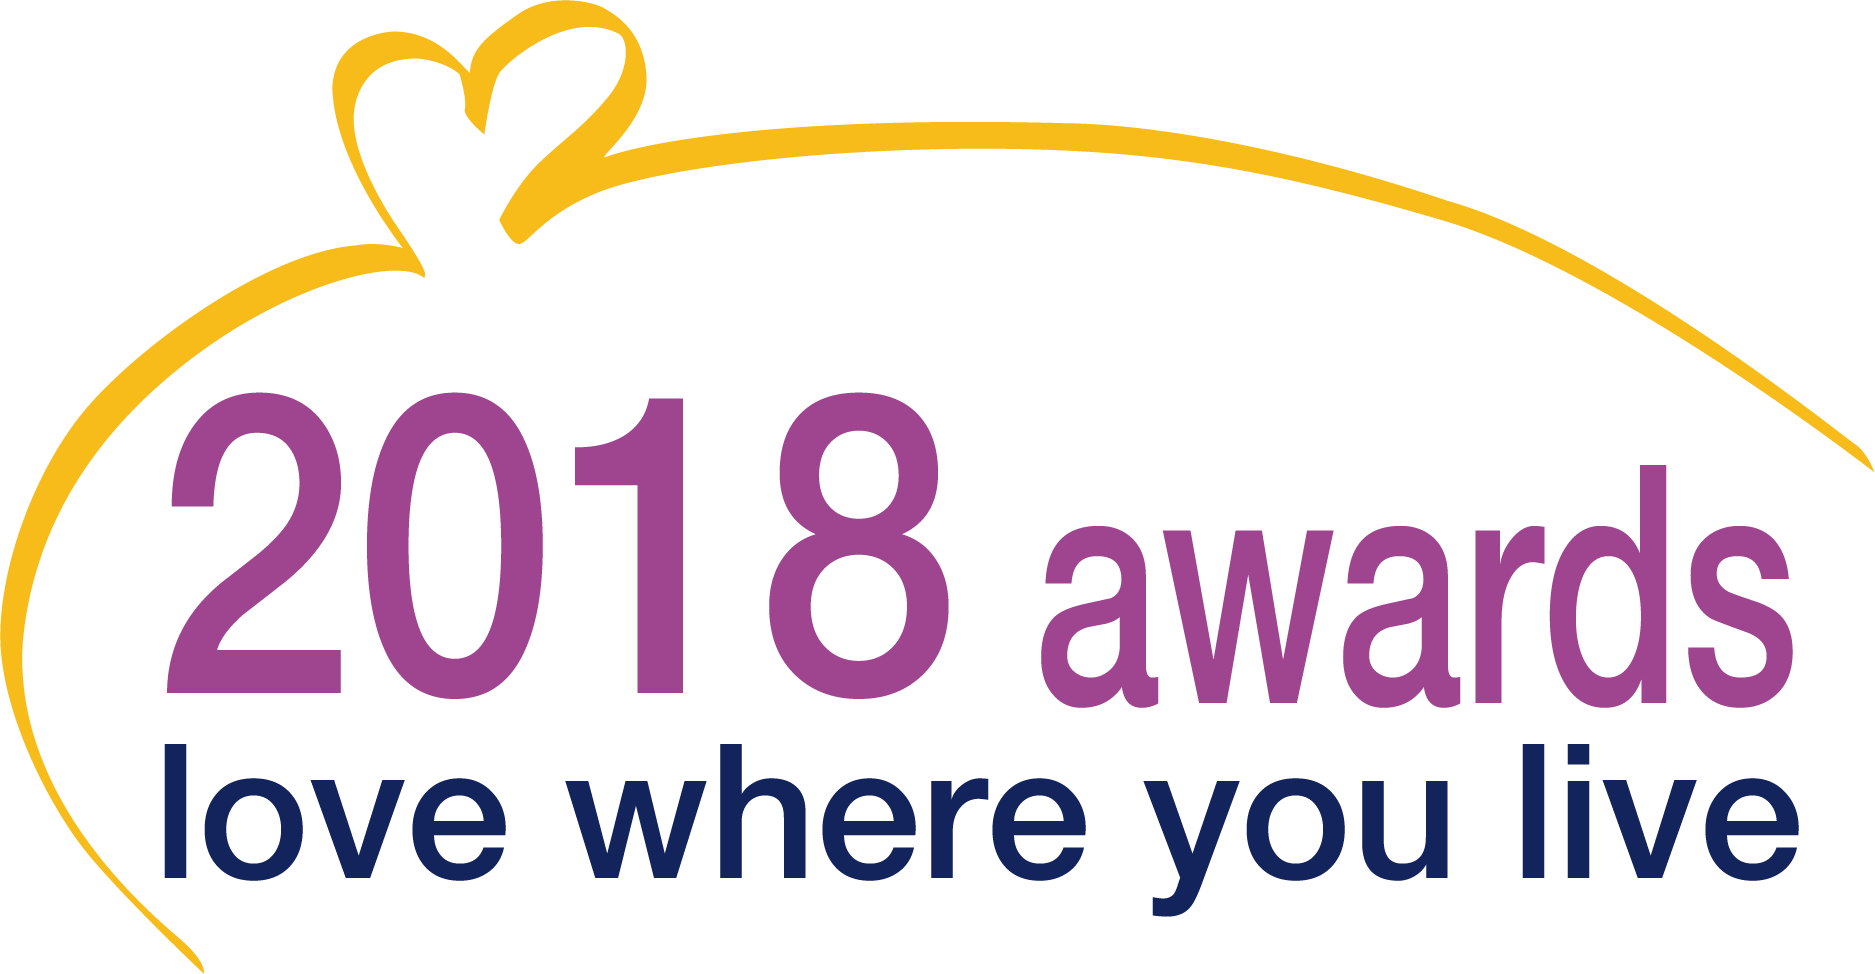 Vote for your community heroes in our Love Where You Live Awards 2018!